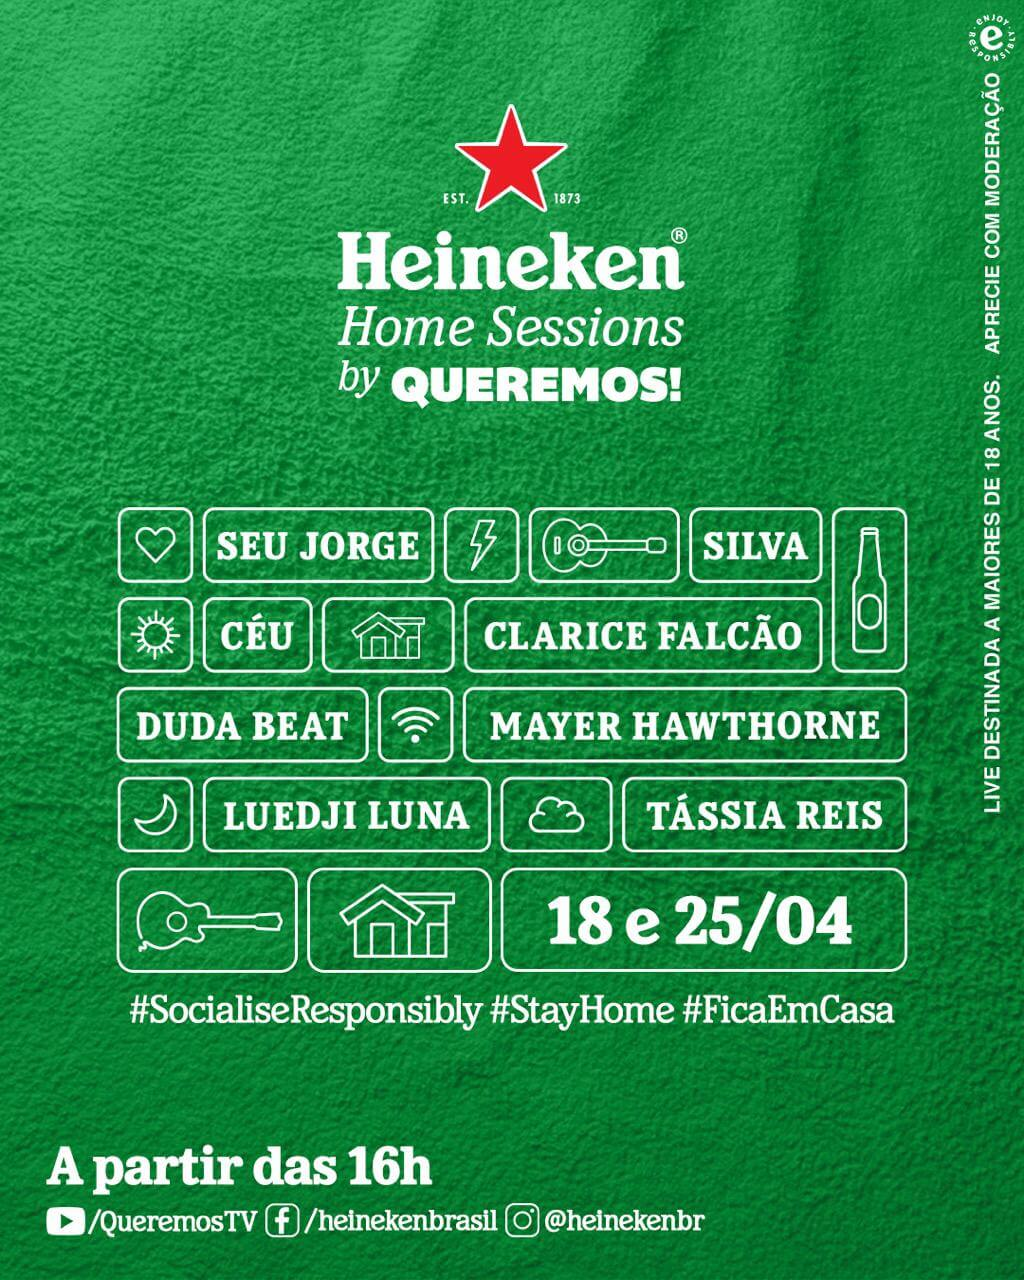 Line-up Heineken Home Sessions by Queremos!